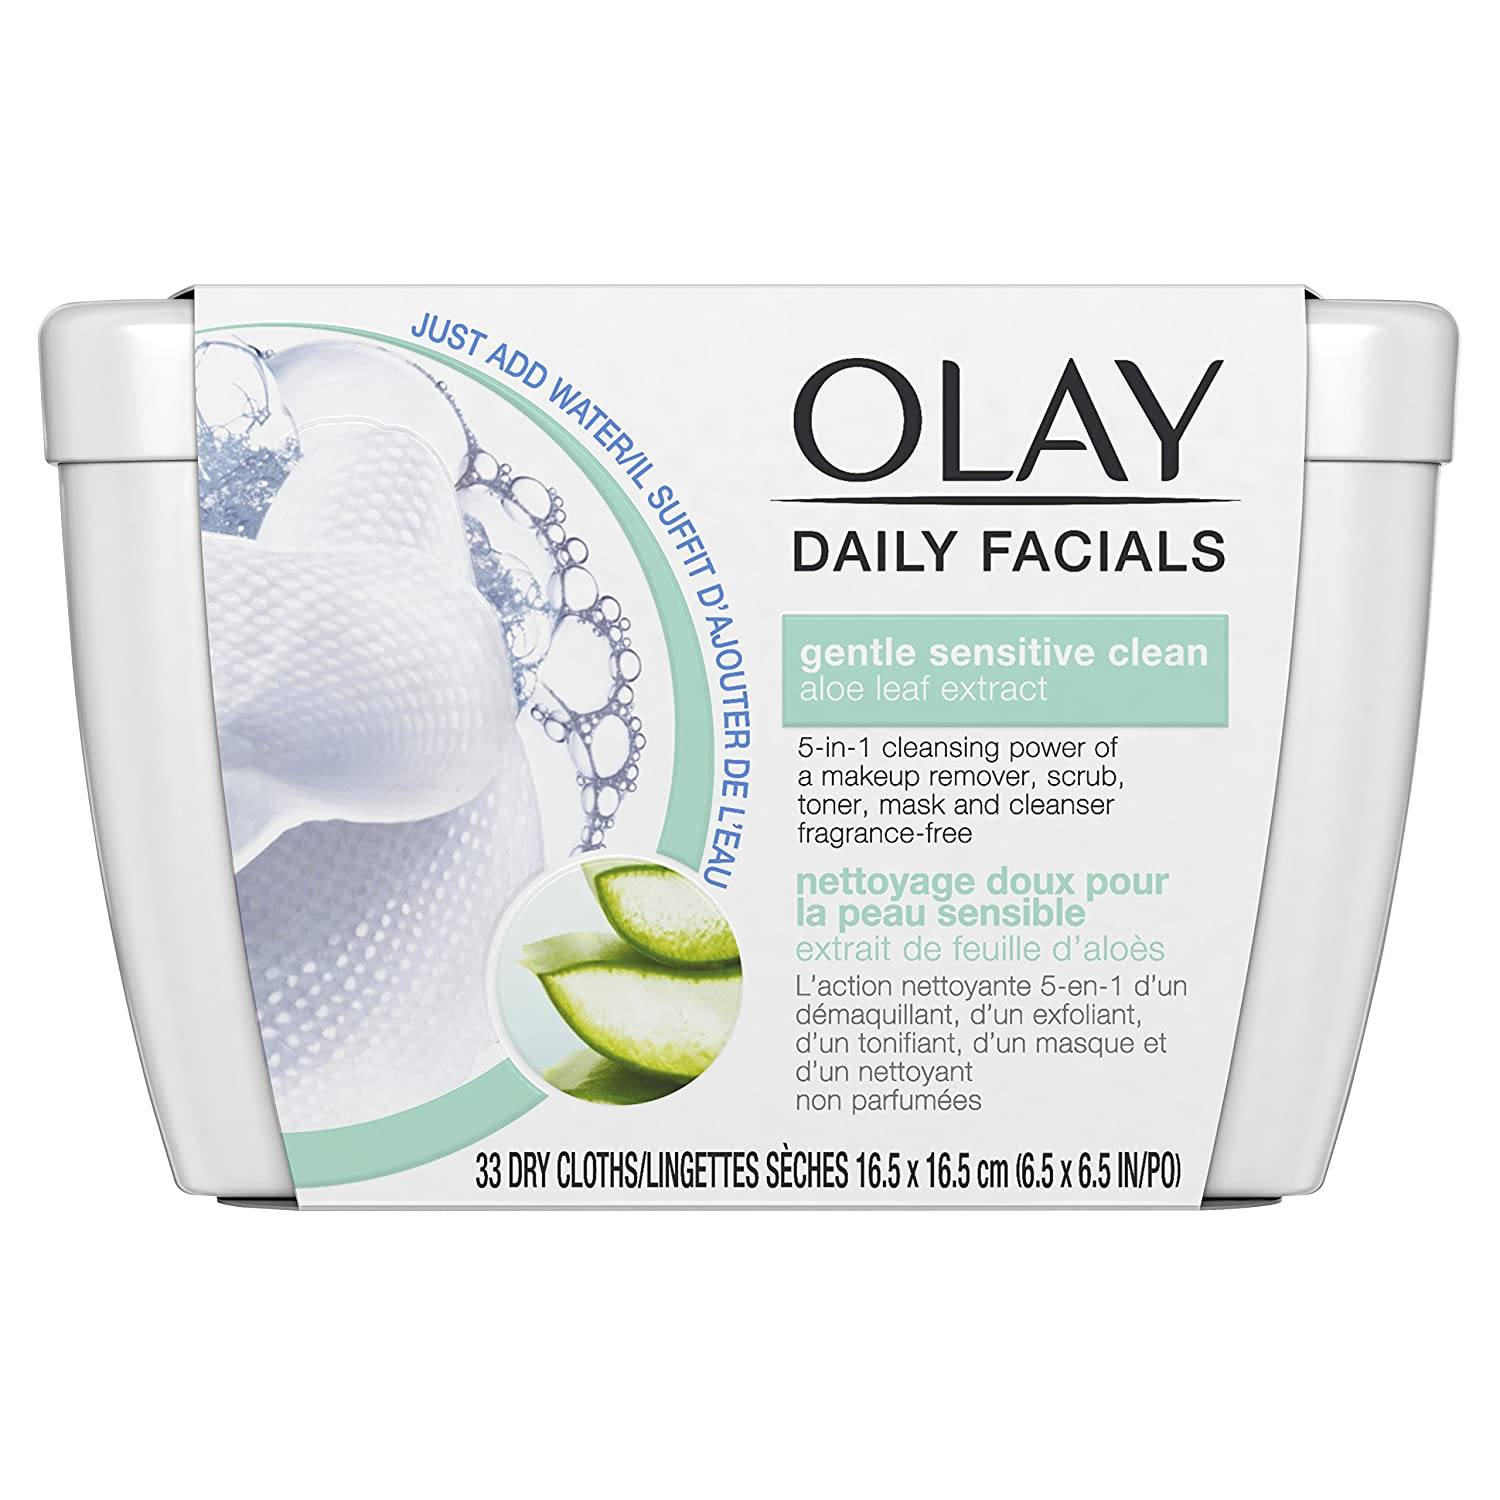 Olay Daily Facial Hydrating Cleansing Cloths w/Grapeseed Extract, Makeup Remover, 33 Count NA